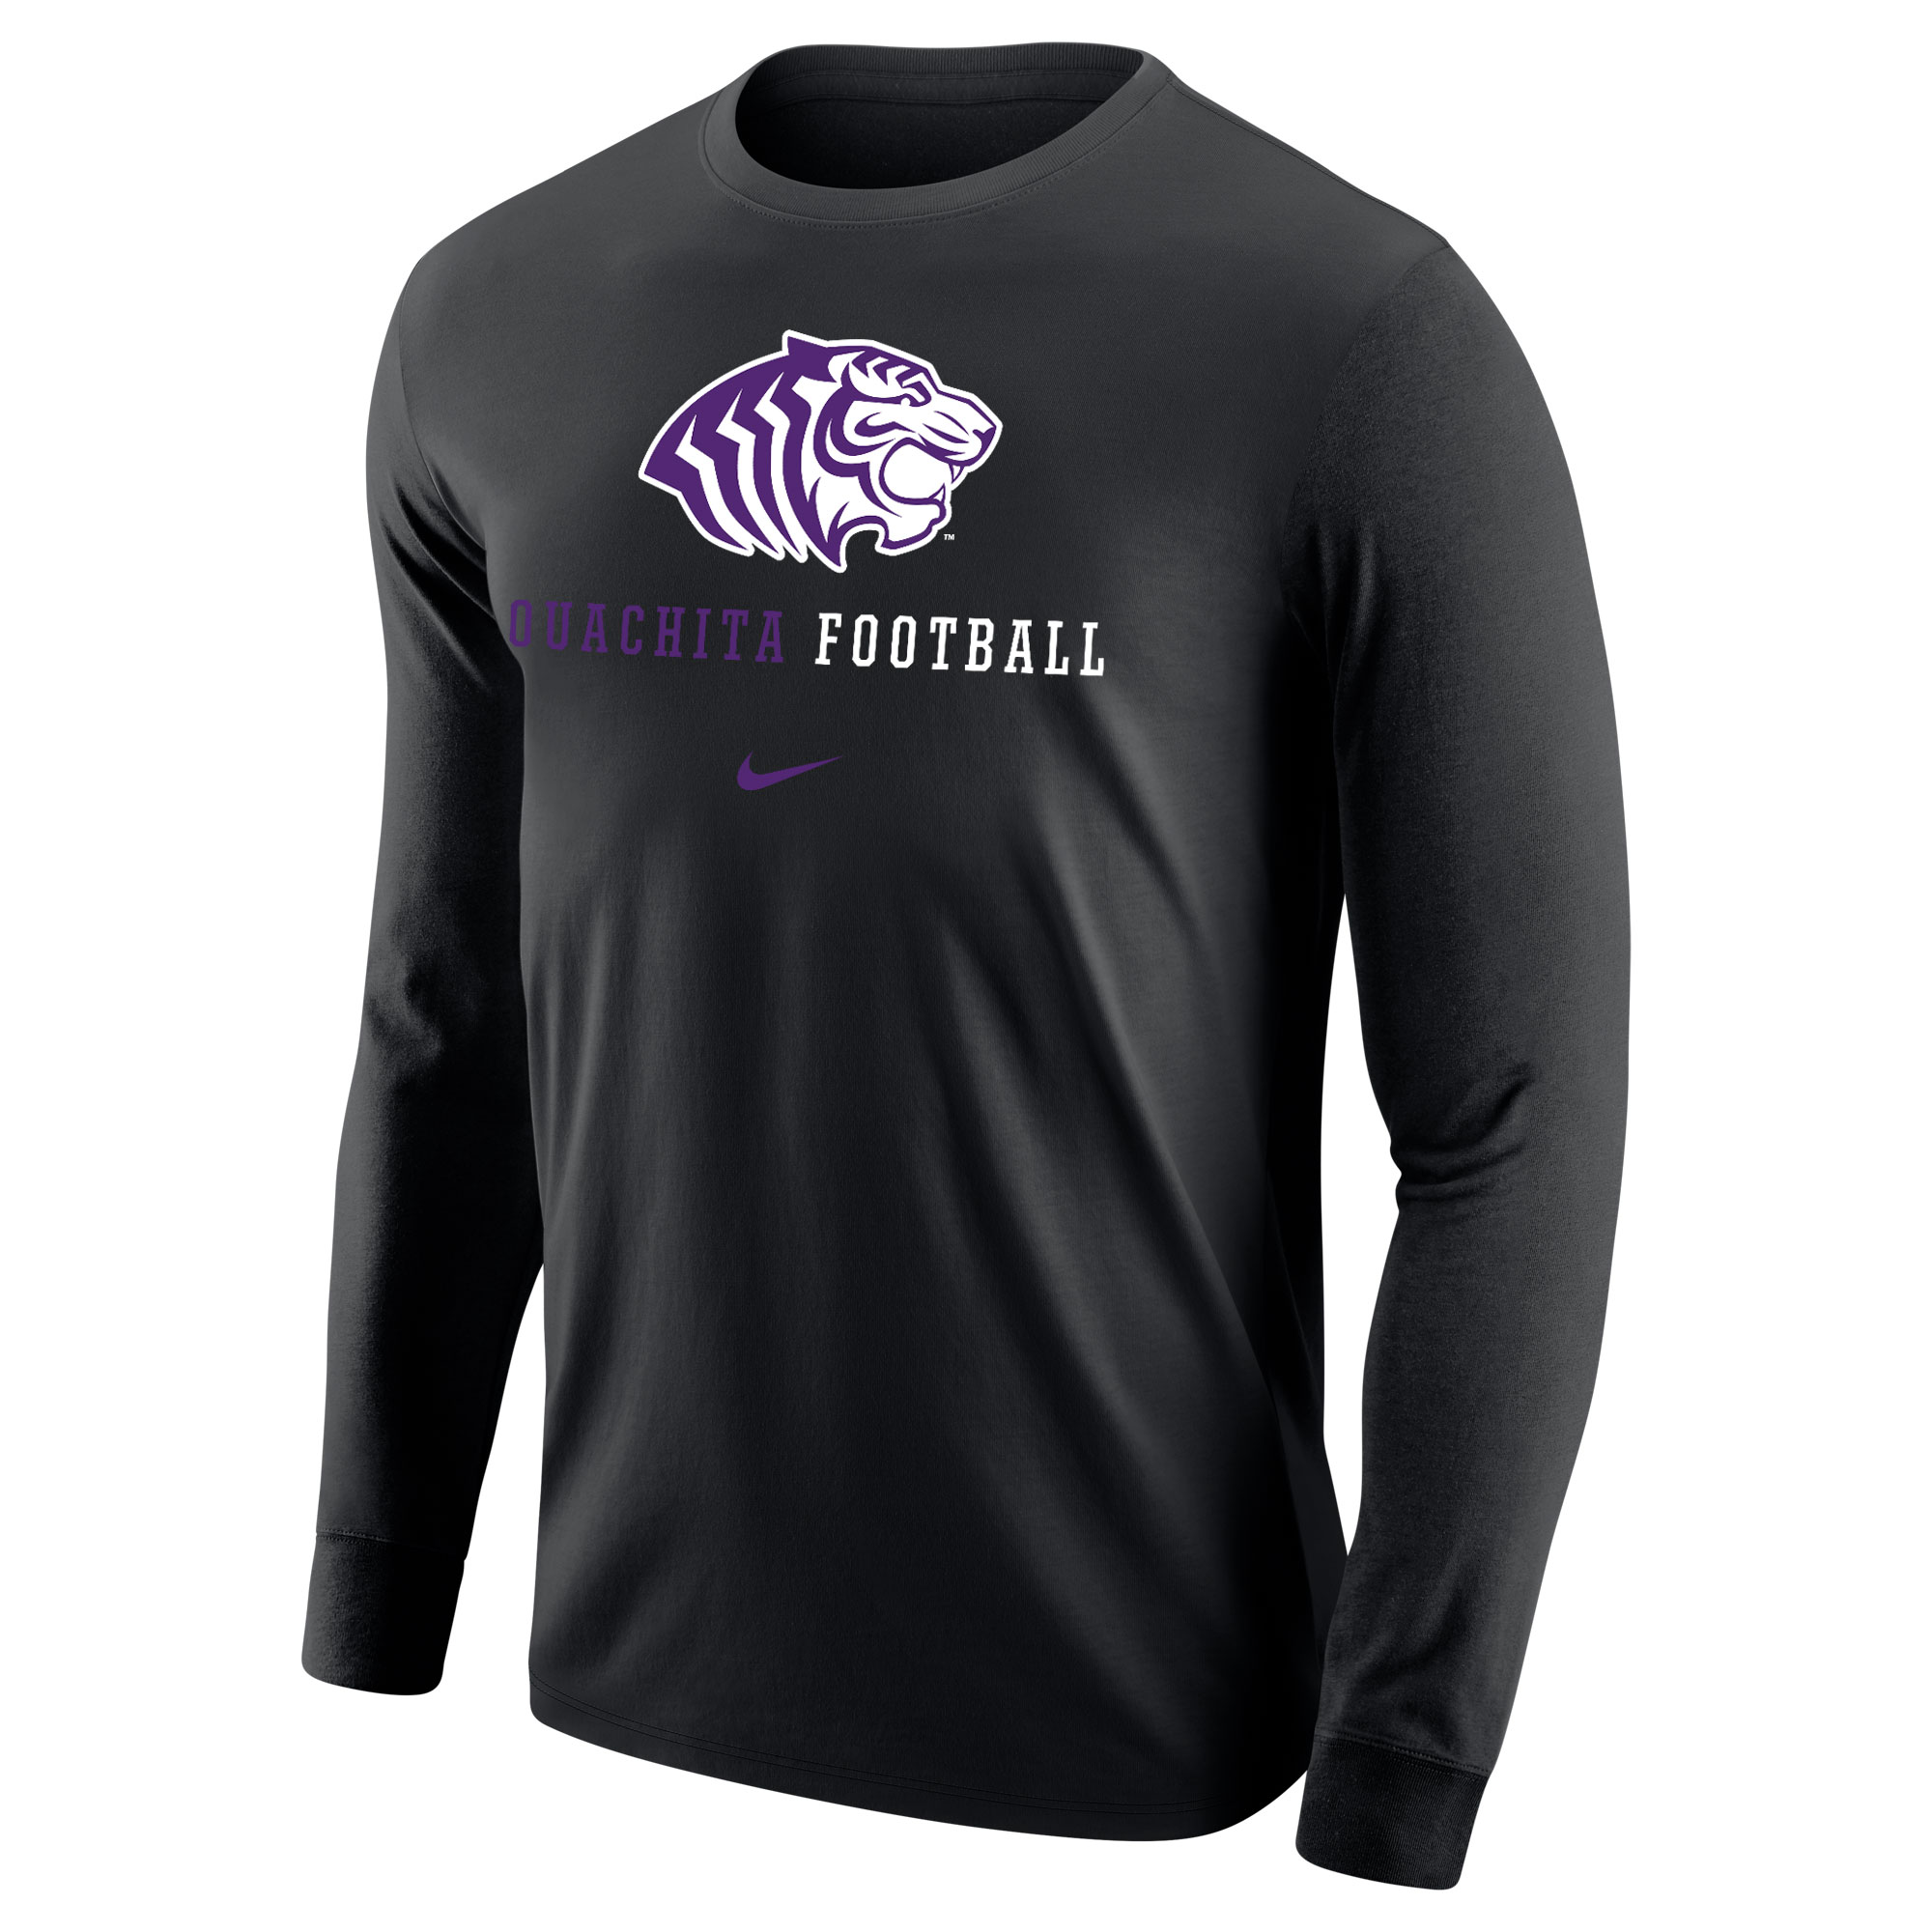 OUACHITA FOOTBALL NIKE CORE LS TEE